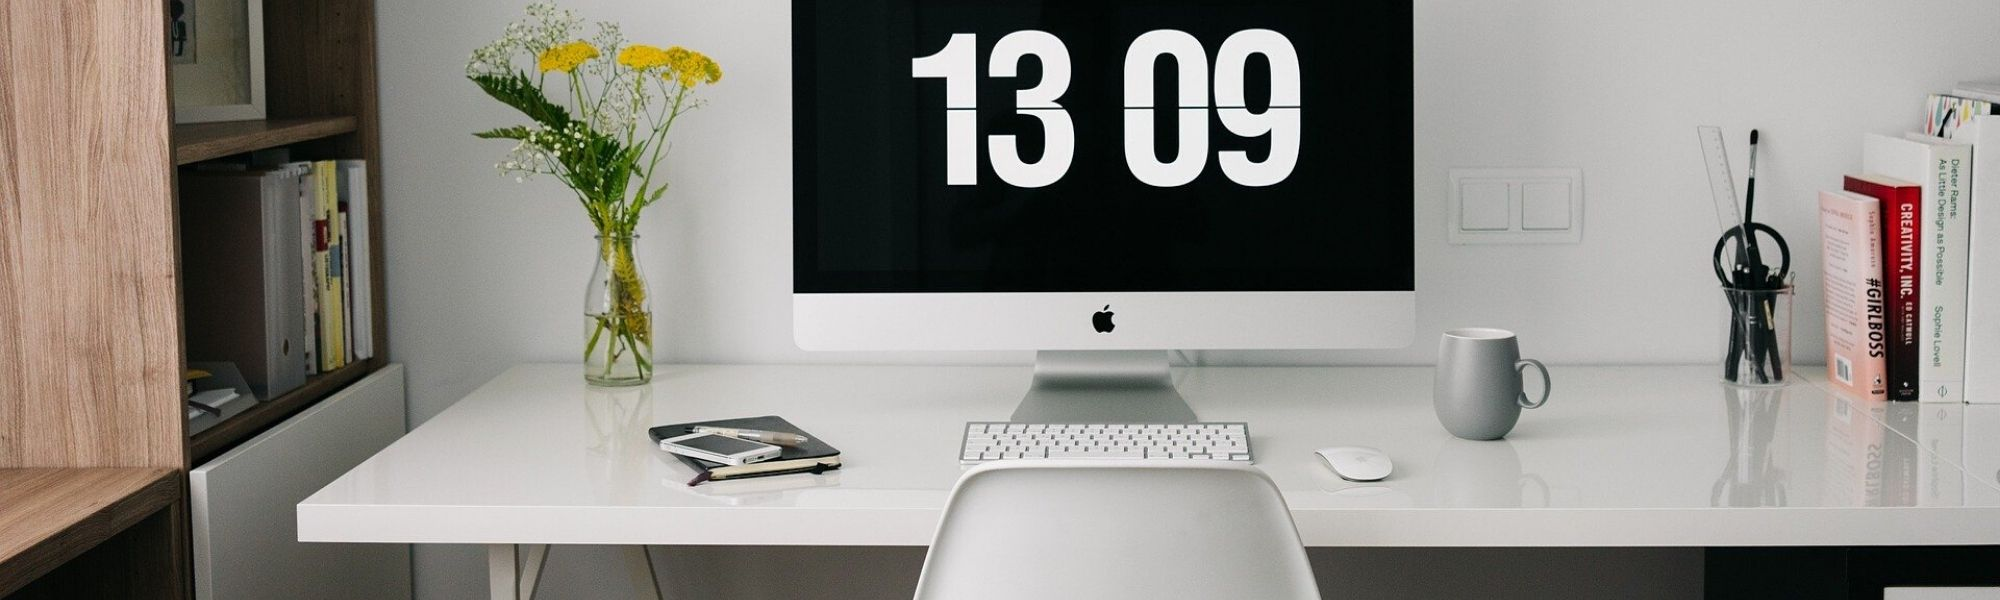 THE INS AND OUTS OF OFFICE ERGONOMICS: HOW TO MAINTAIN HEALTH AND FOCUS WHILE WORKING FROM HOME